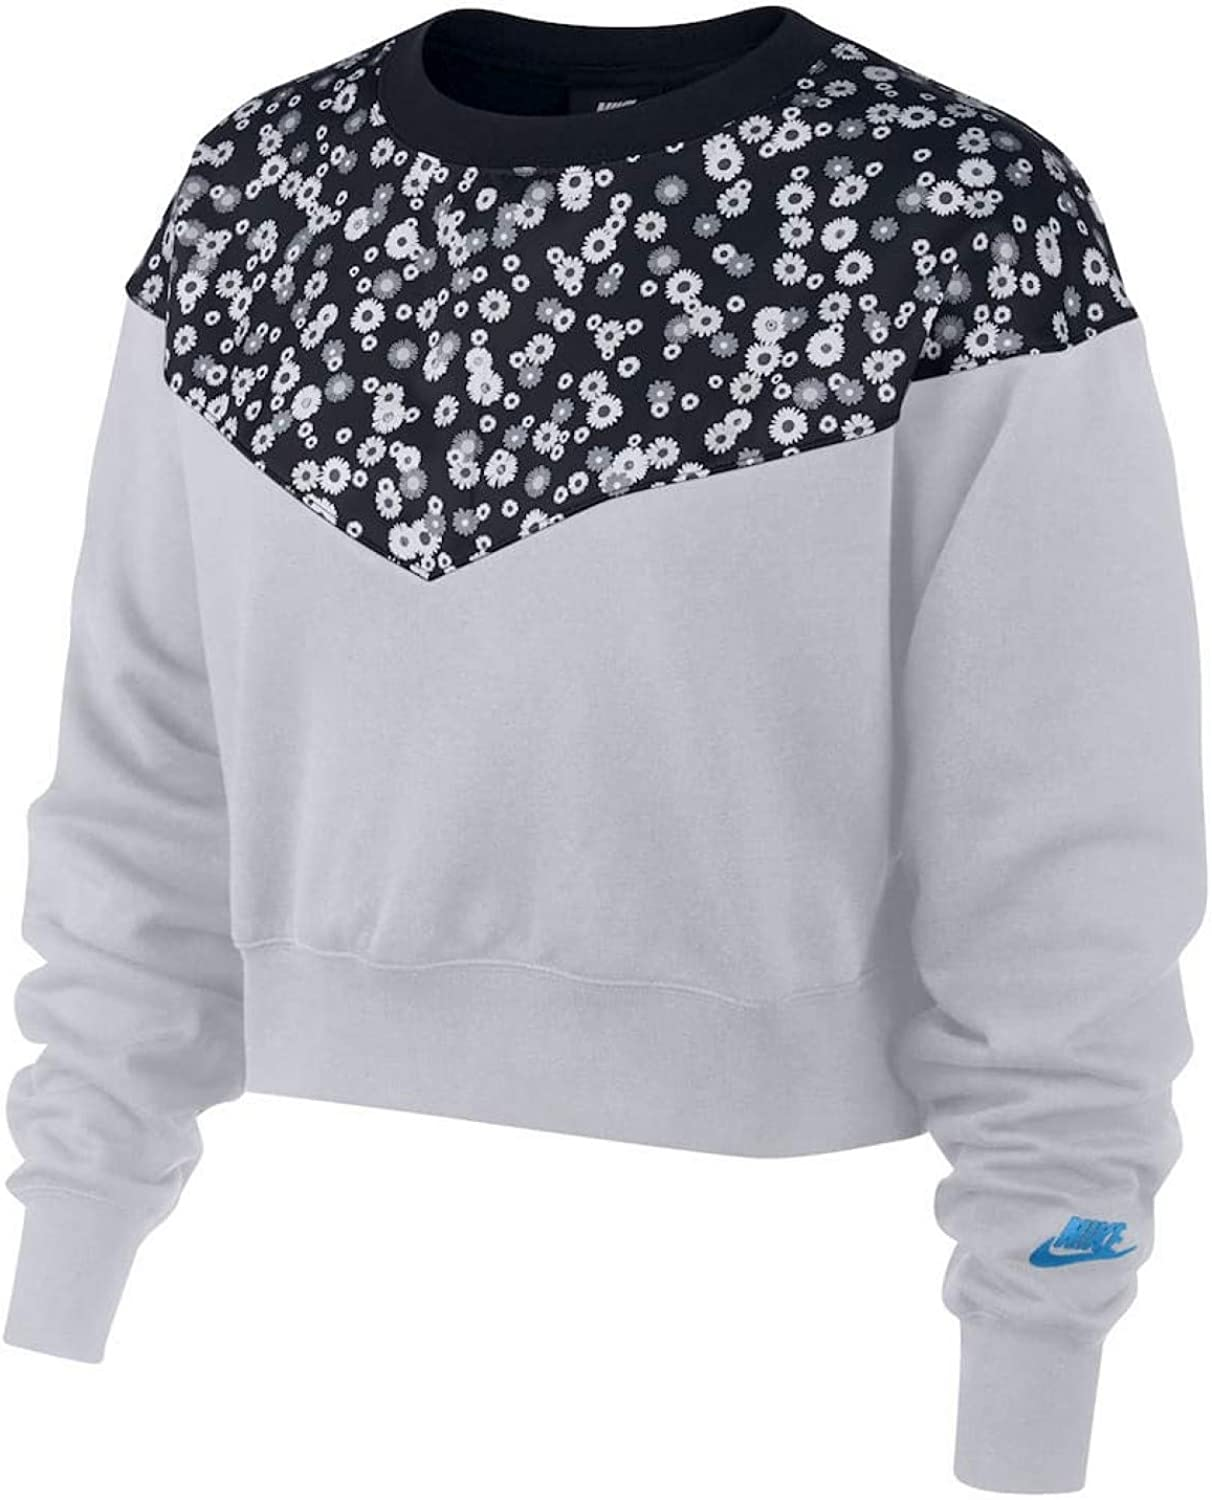 Nike Women's Sportswear Heritage Fleece Cropped Opening large release sale Floral-Print Top Limited time trial price